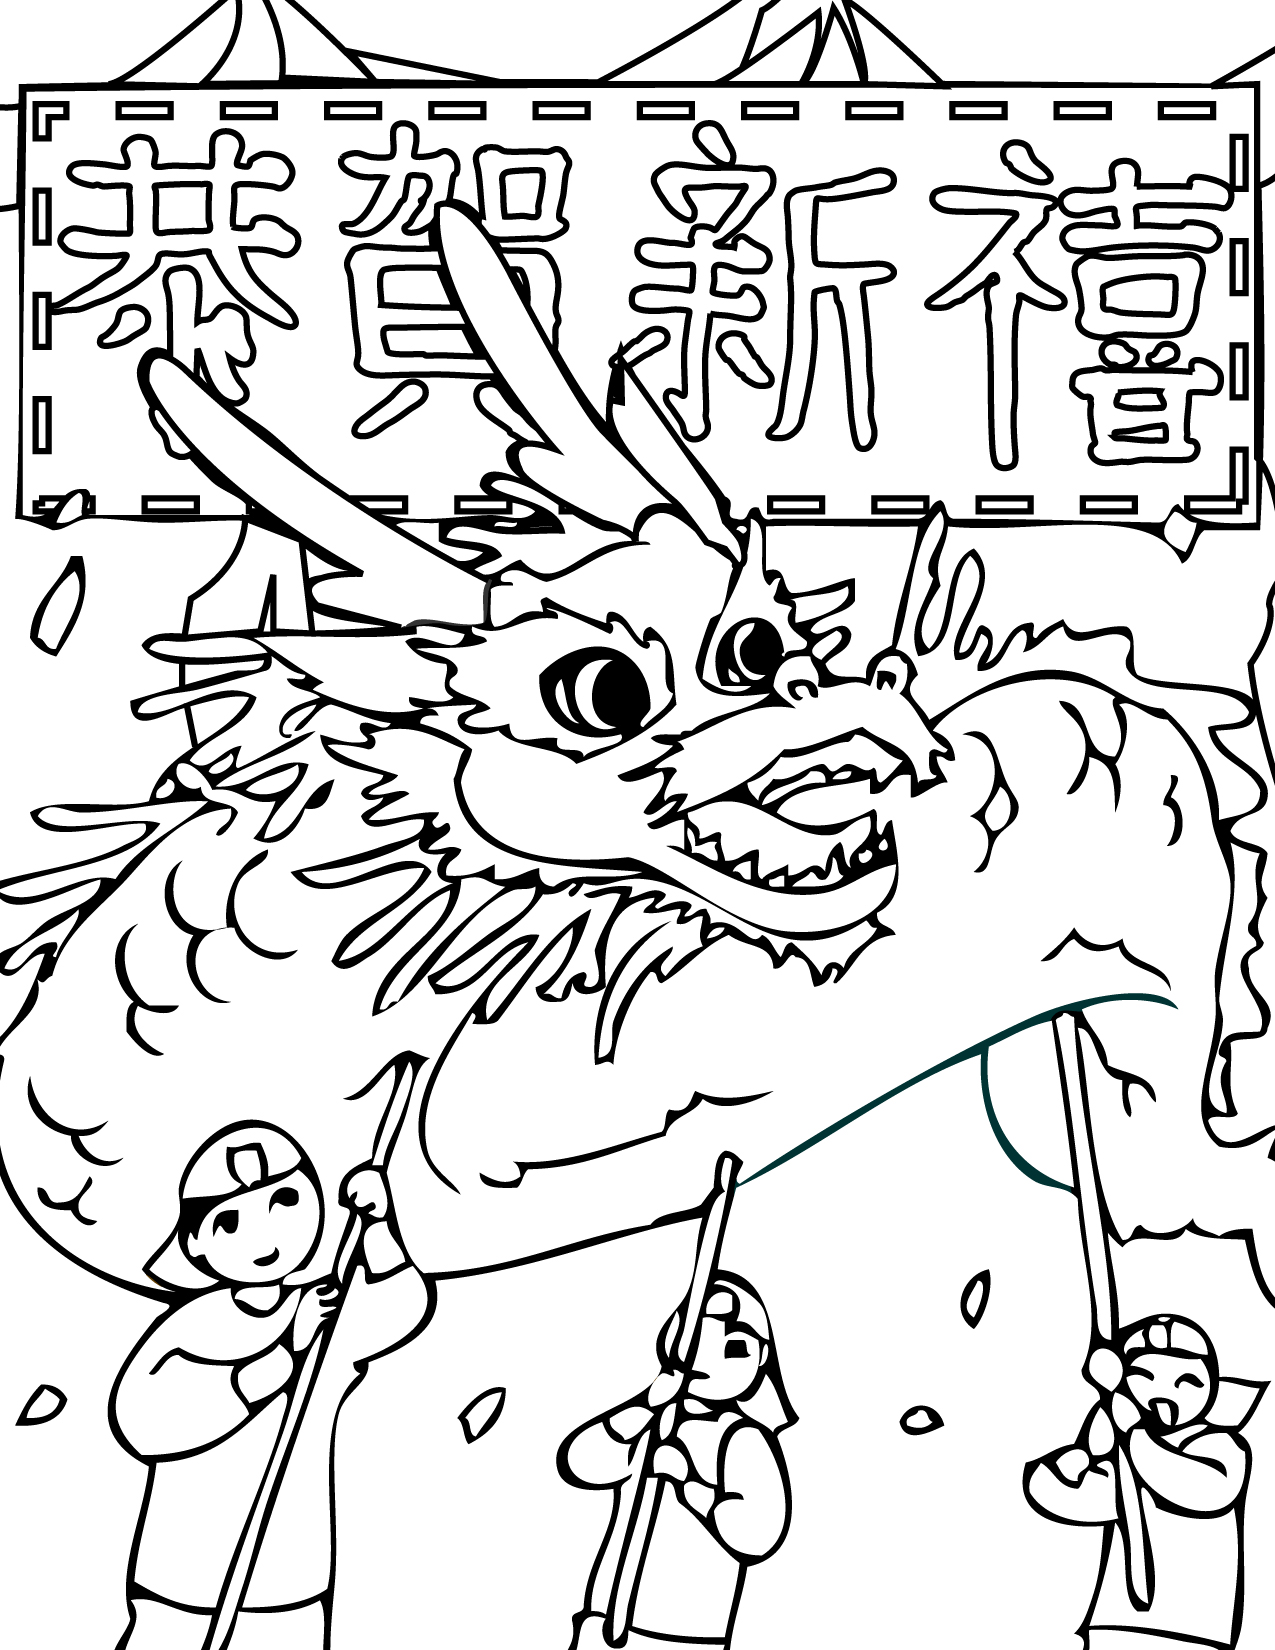 Chinese Coloring Pages To Download And Print For Free